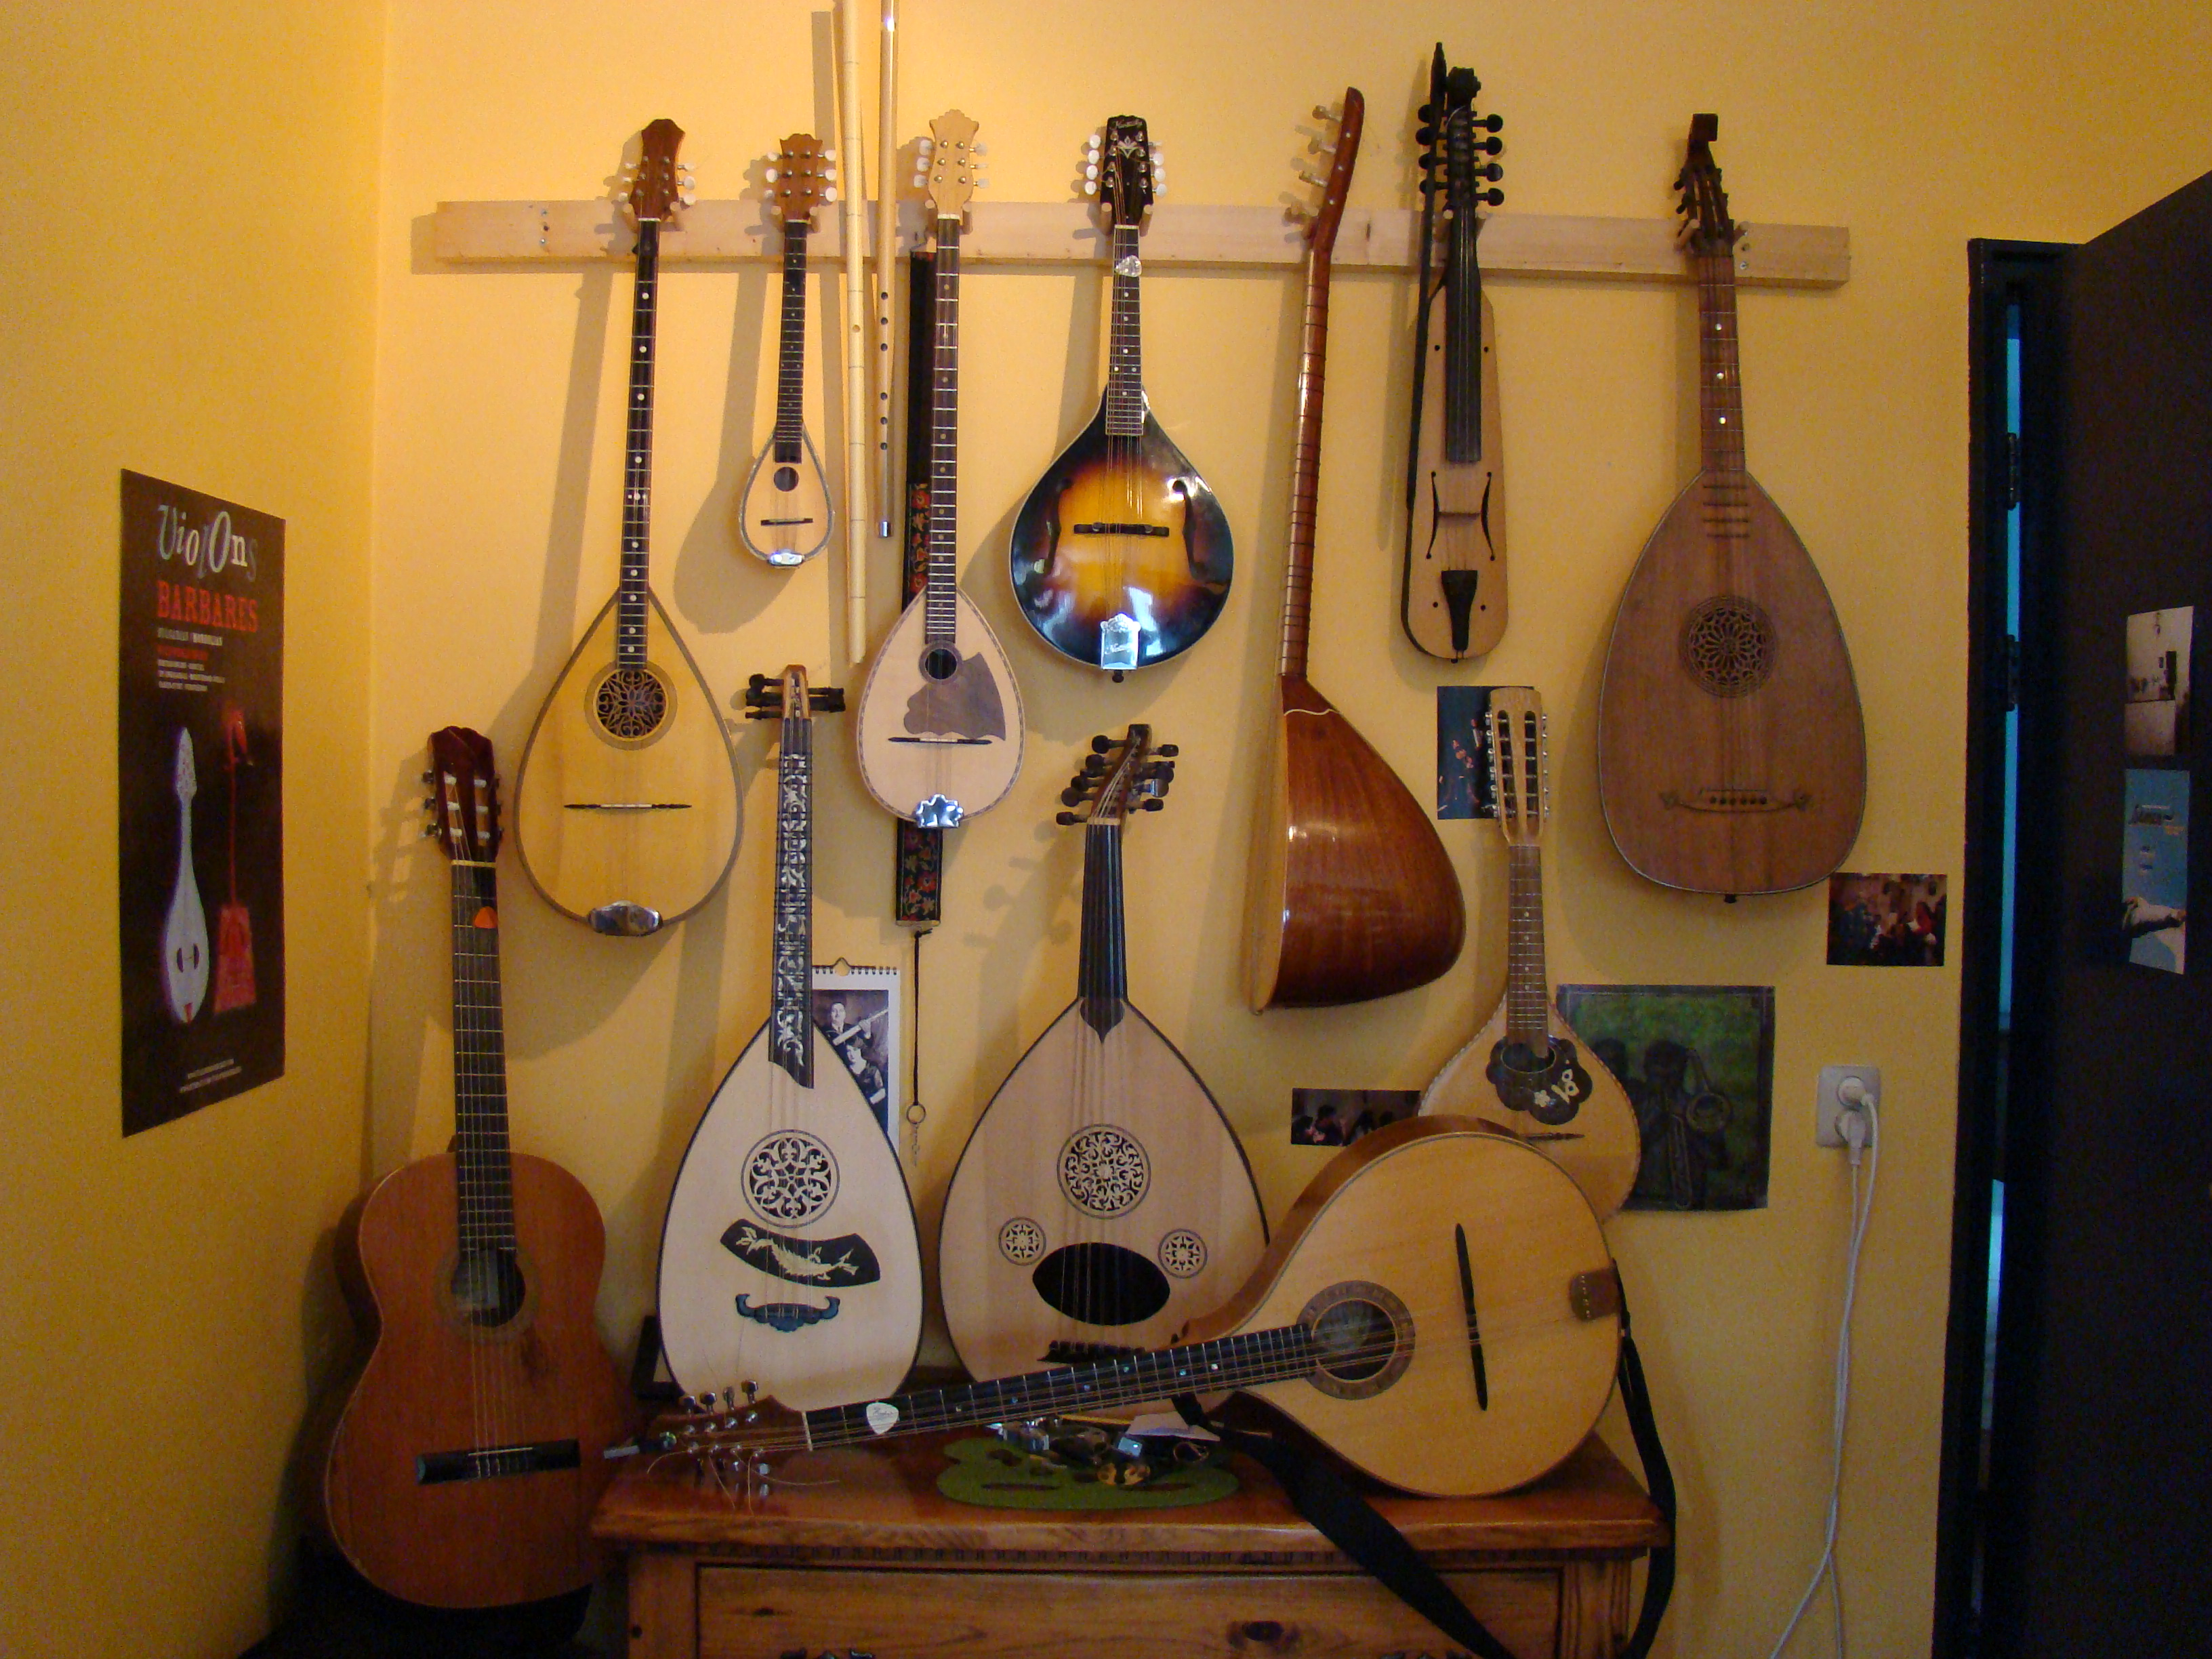 All our instruments